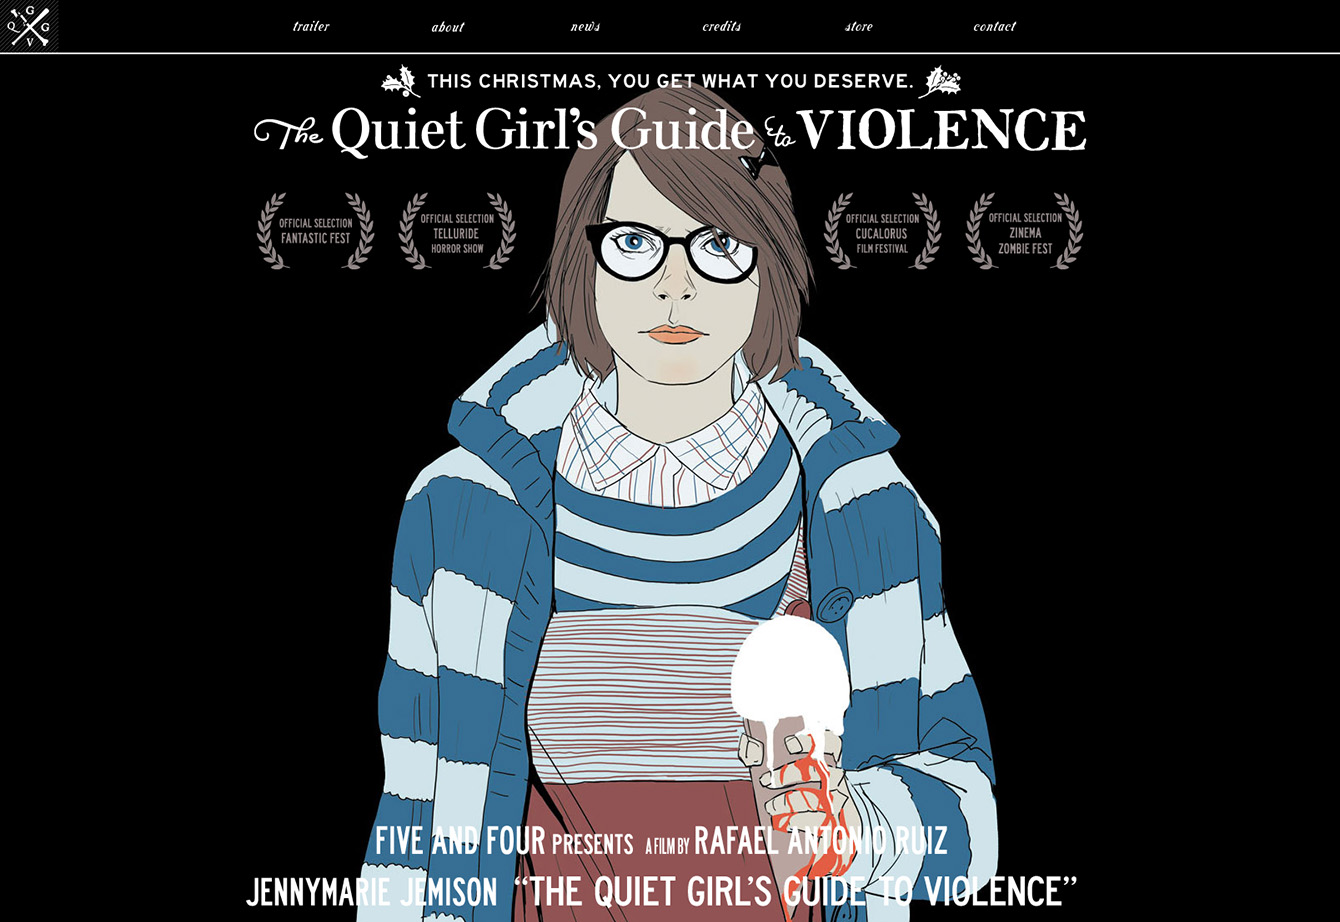 Homepage of the film website The Quiet Girl's Guide to Violence